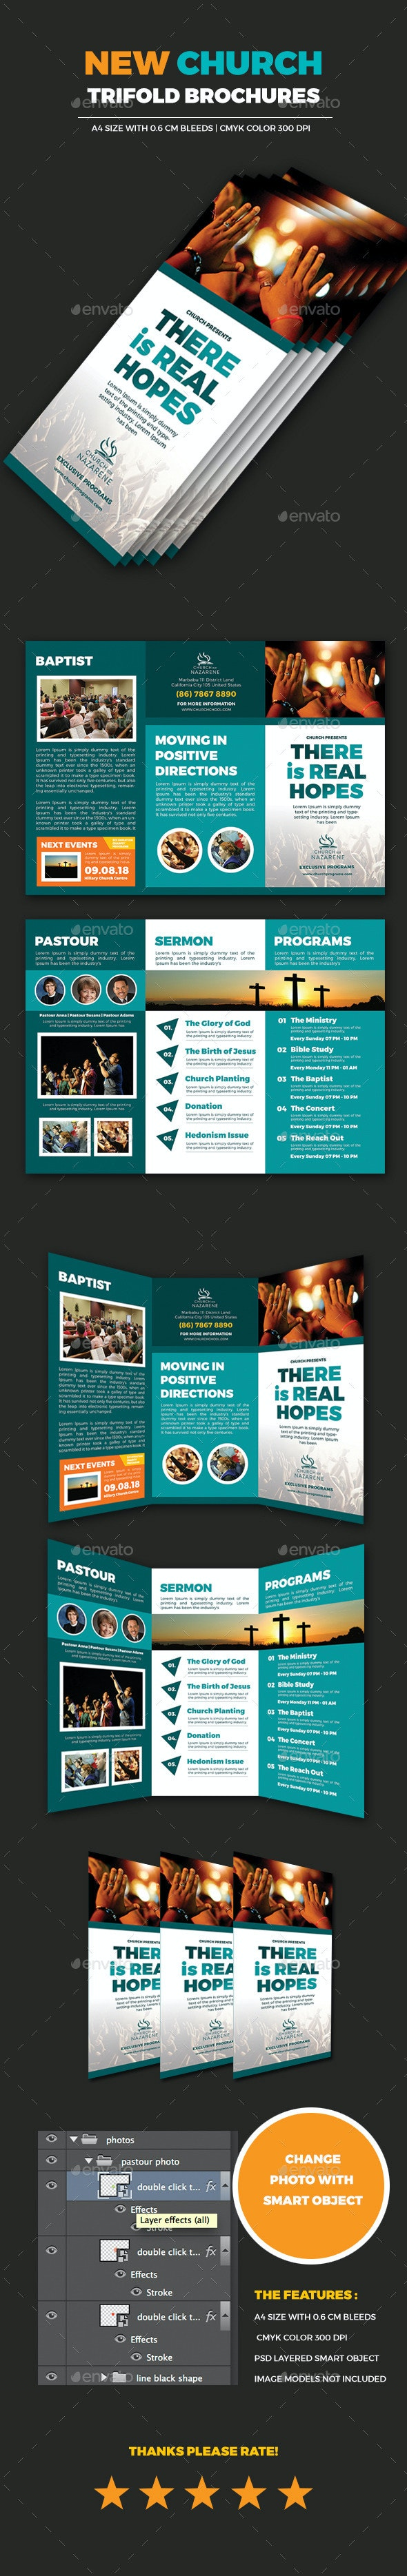 Real Hopes Church Trifold Brochures - Brochures Print Templates